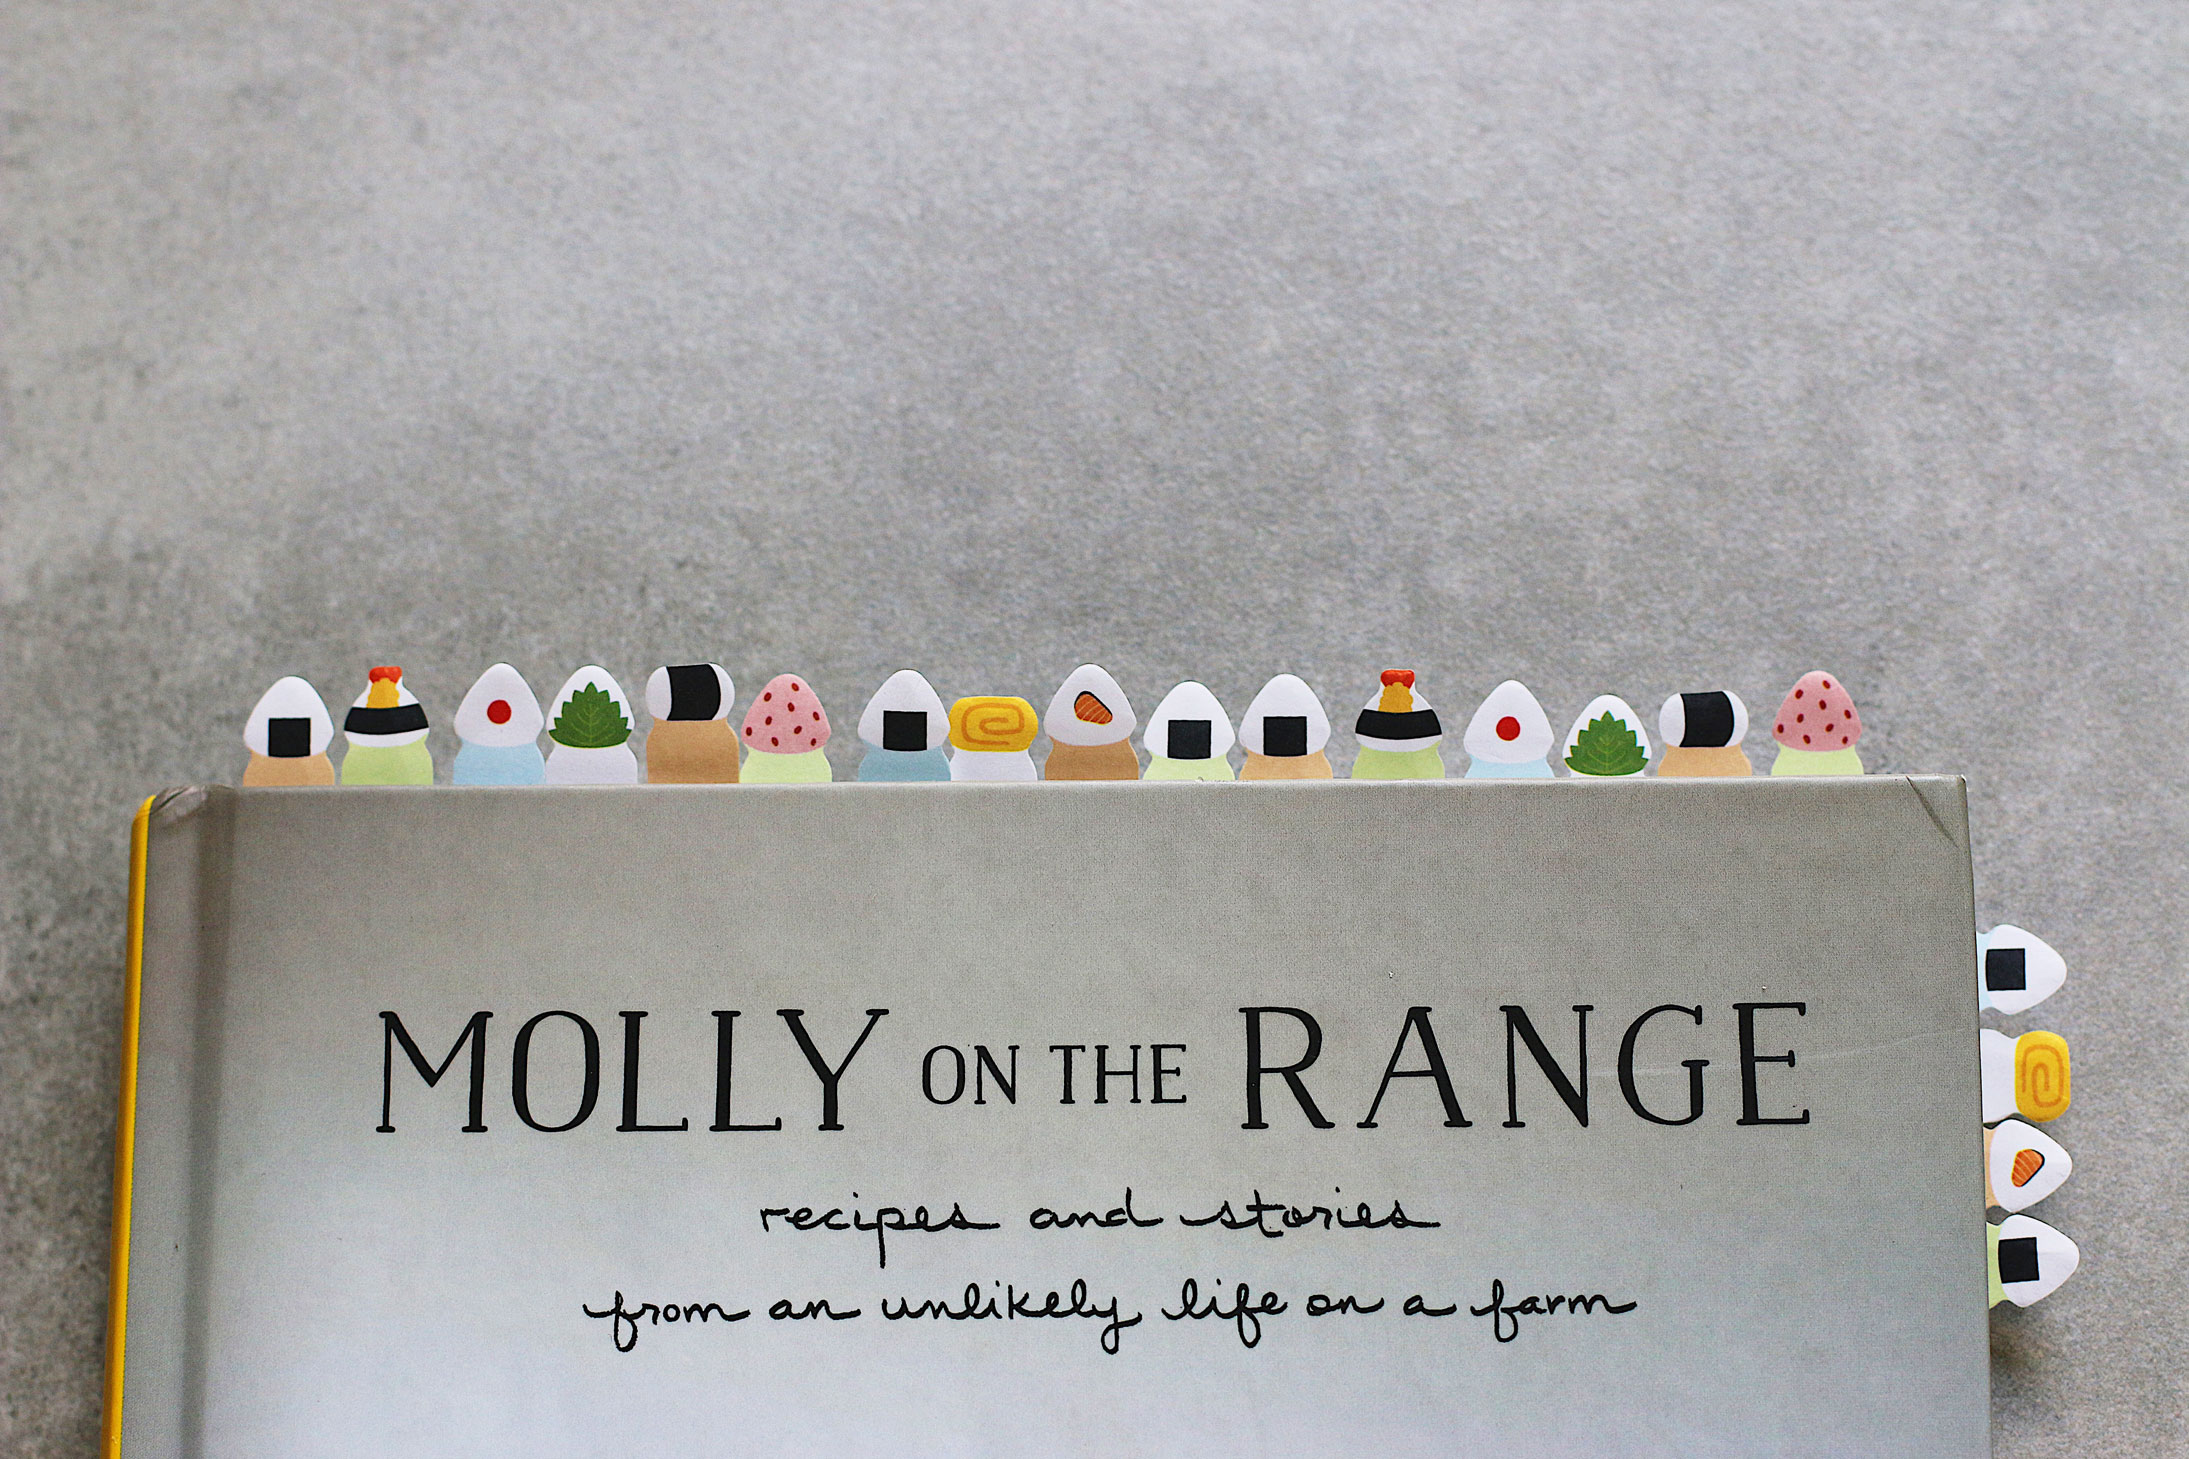 Her-Cookbook-Club-Molly-On-the-Range-bookmarks-recipes